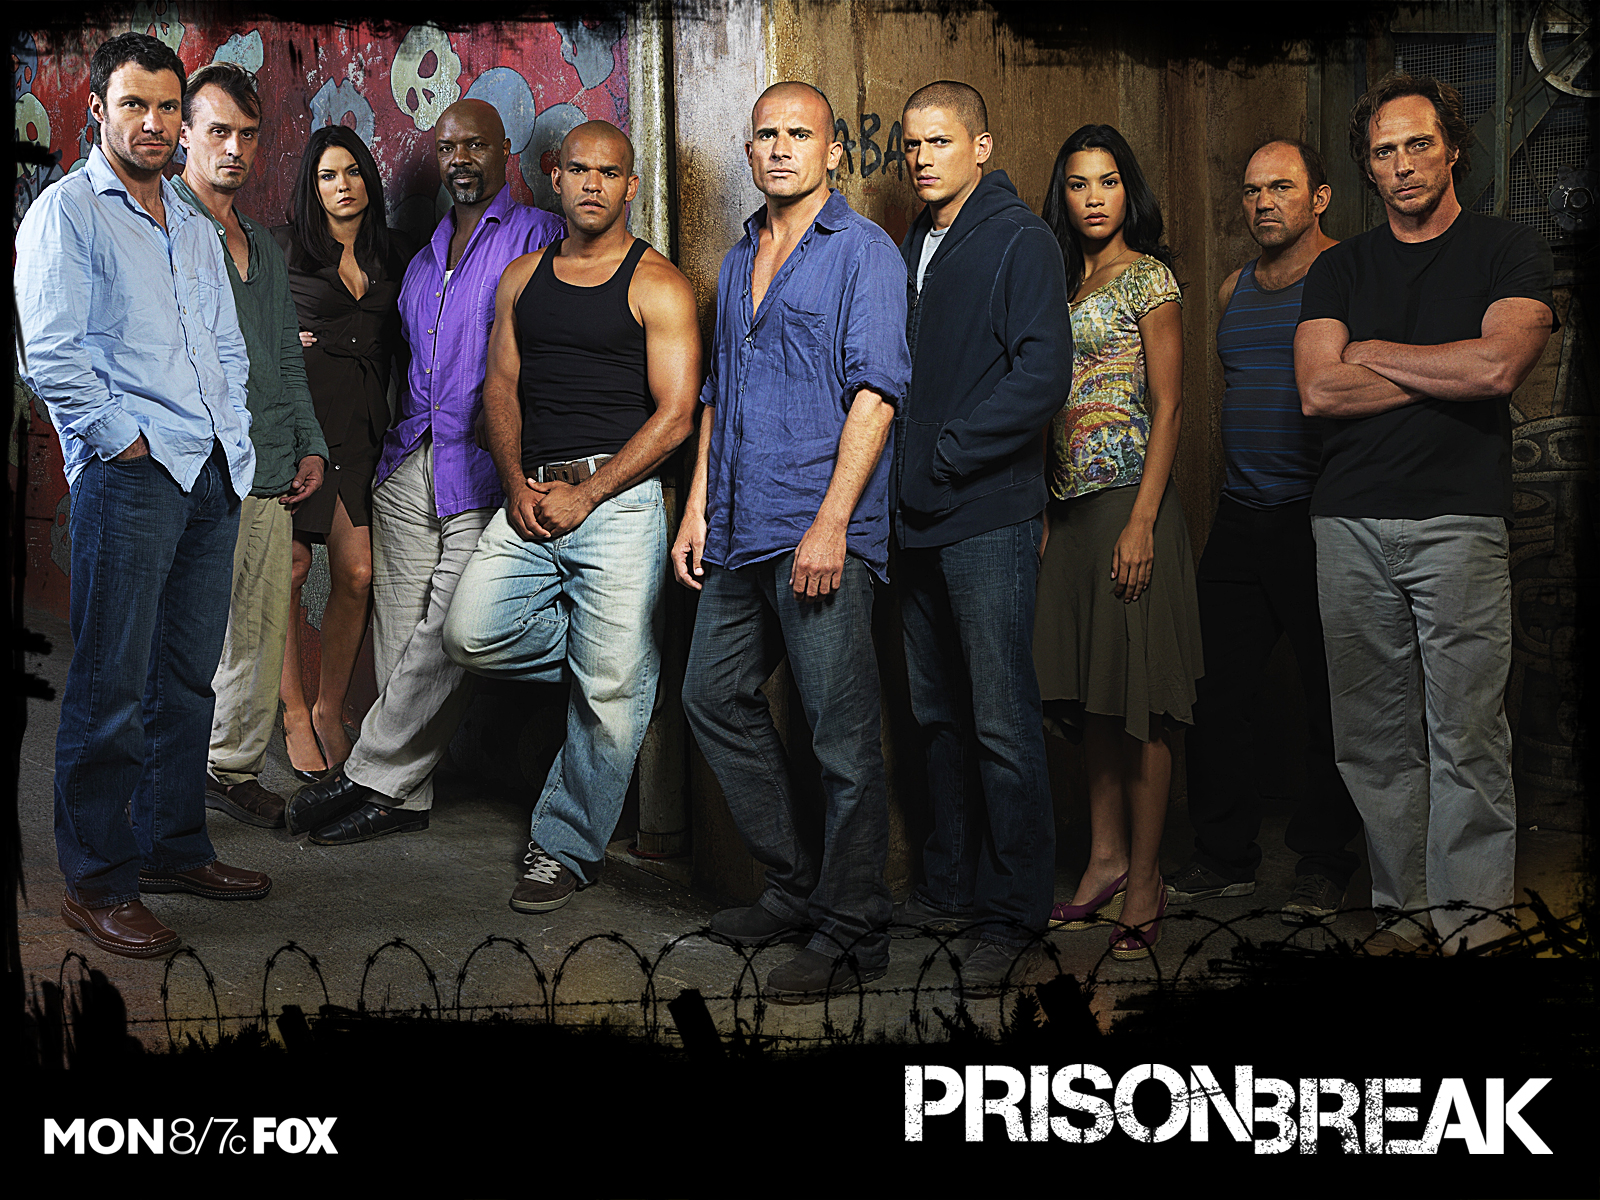 Prison Break TV Series 145.44 Kb